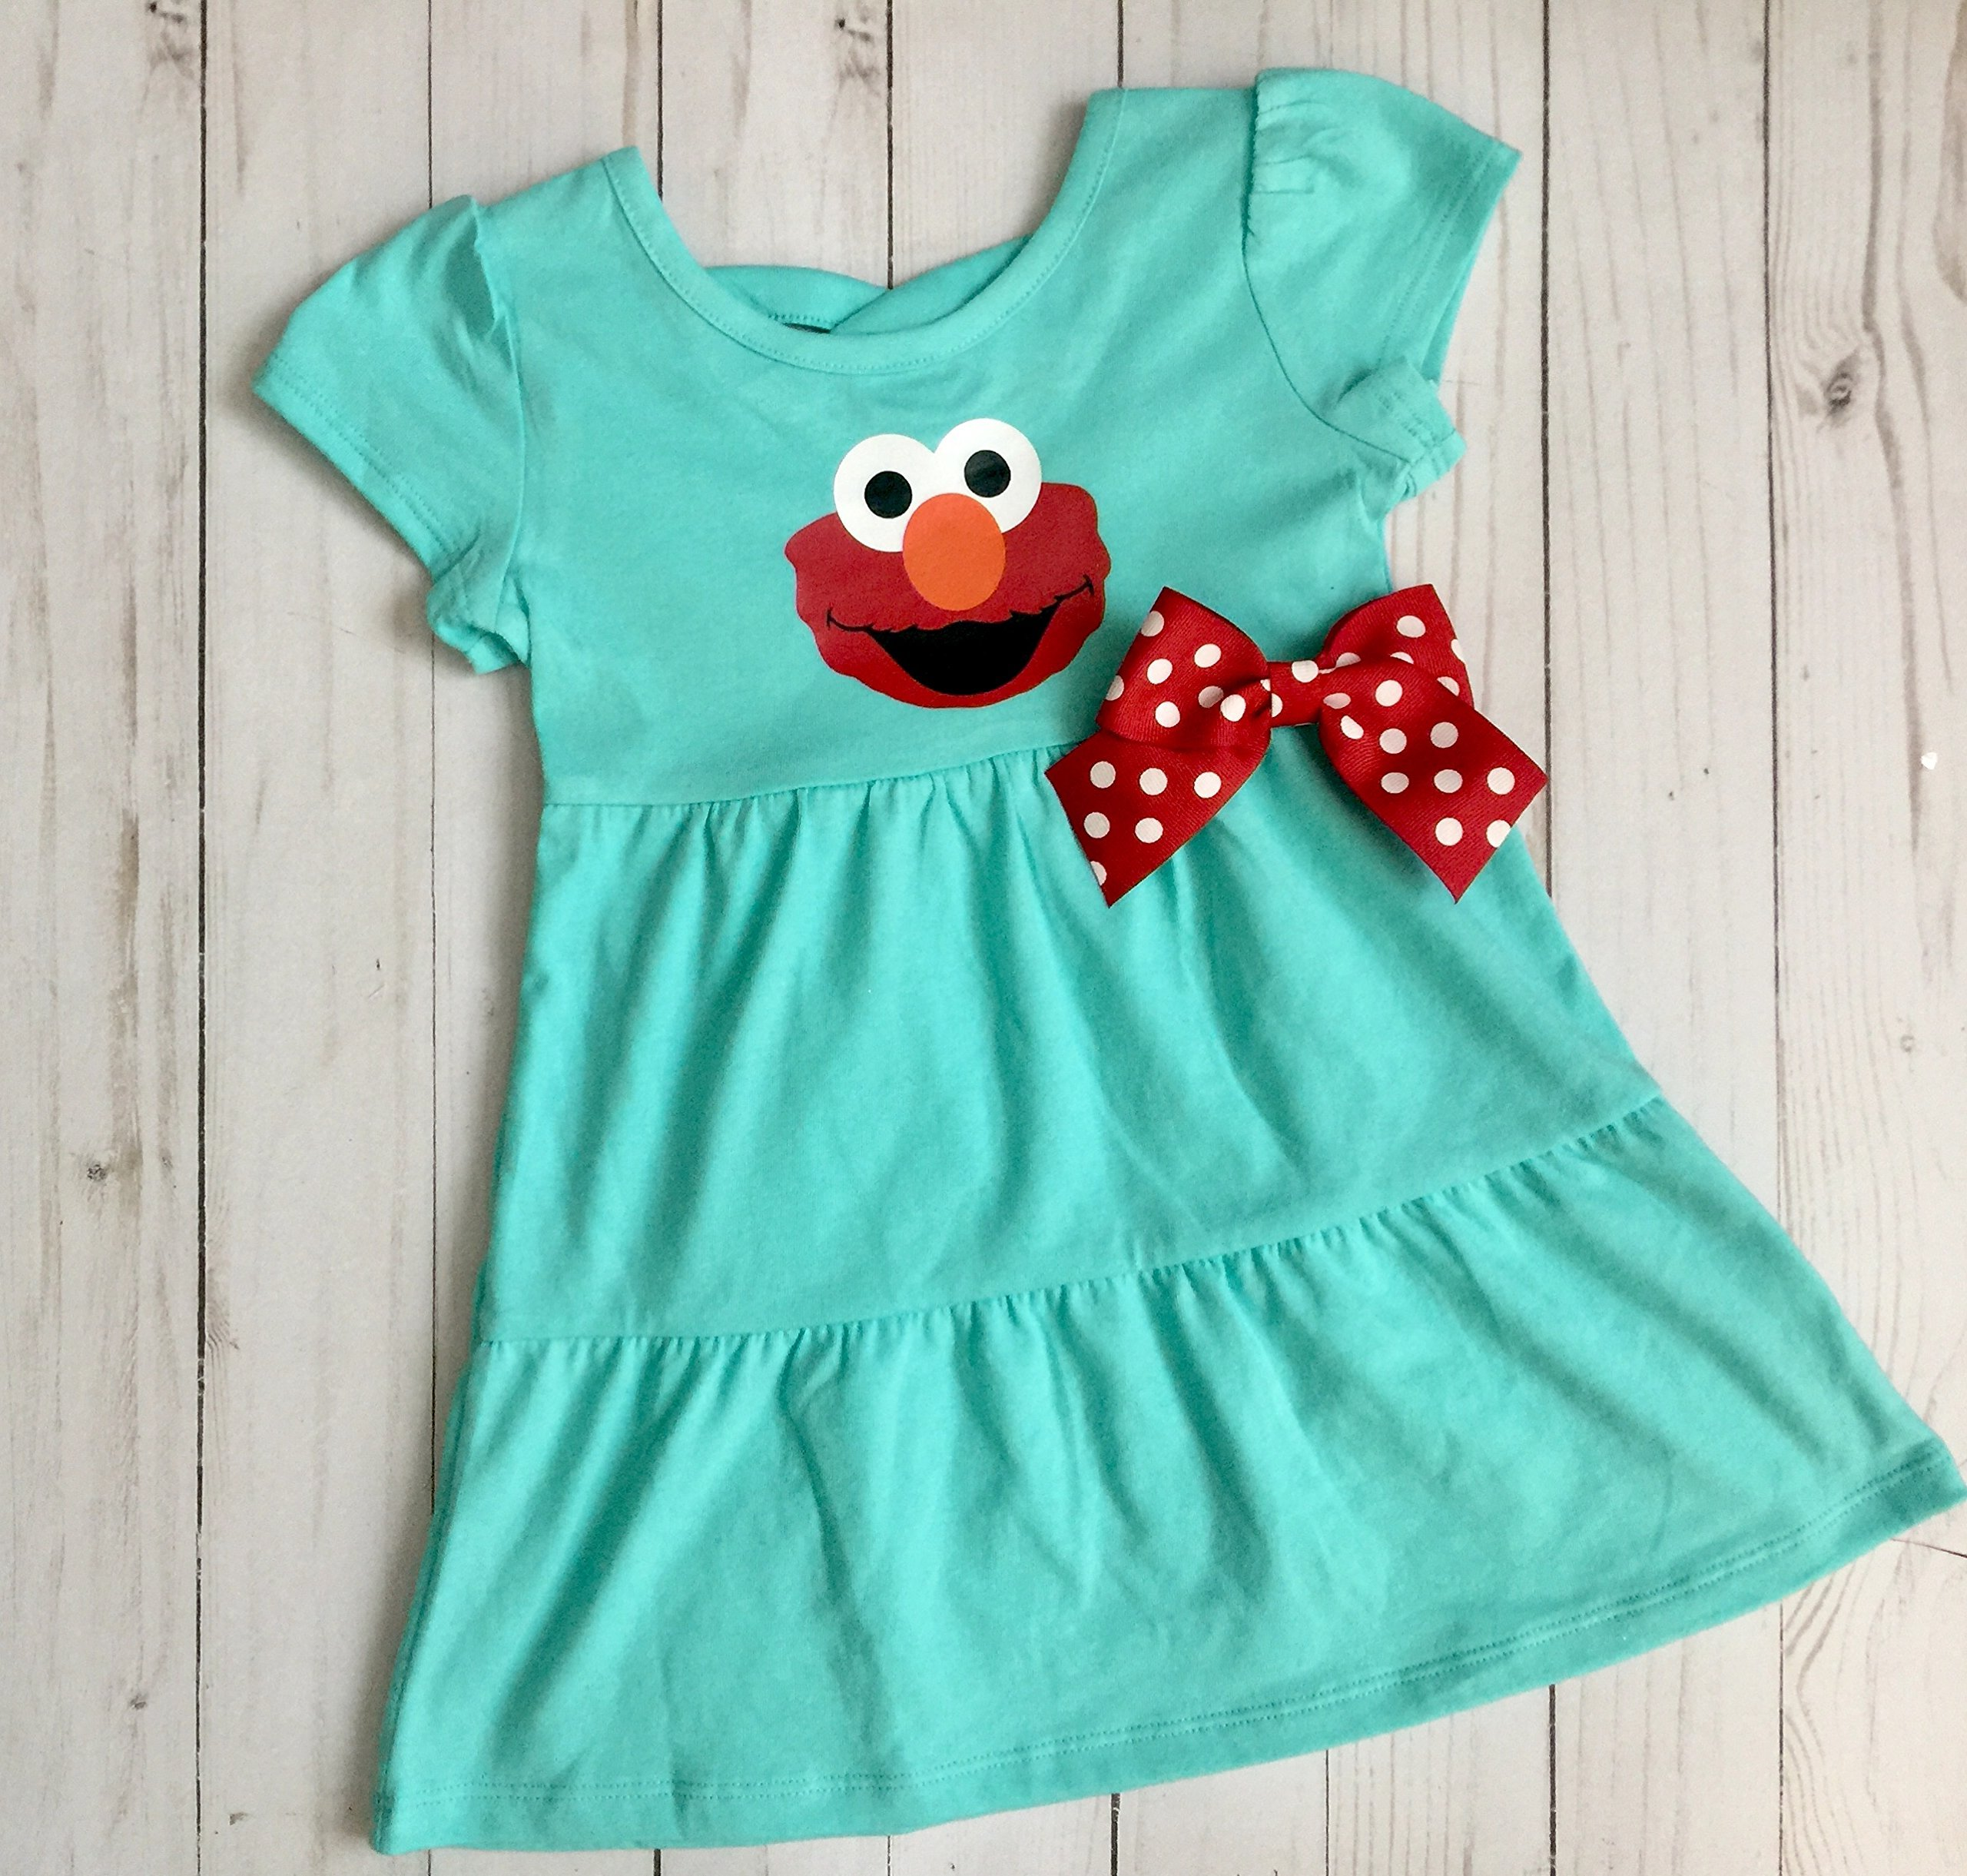 Elmo dress for Birthday in aqua and red